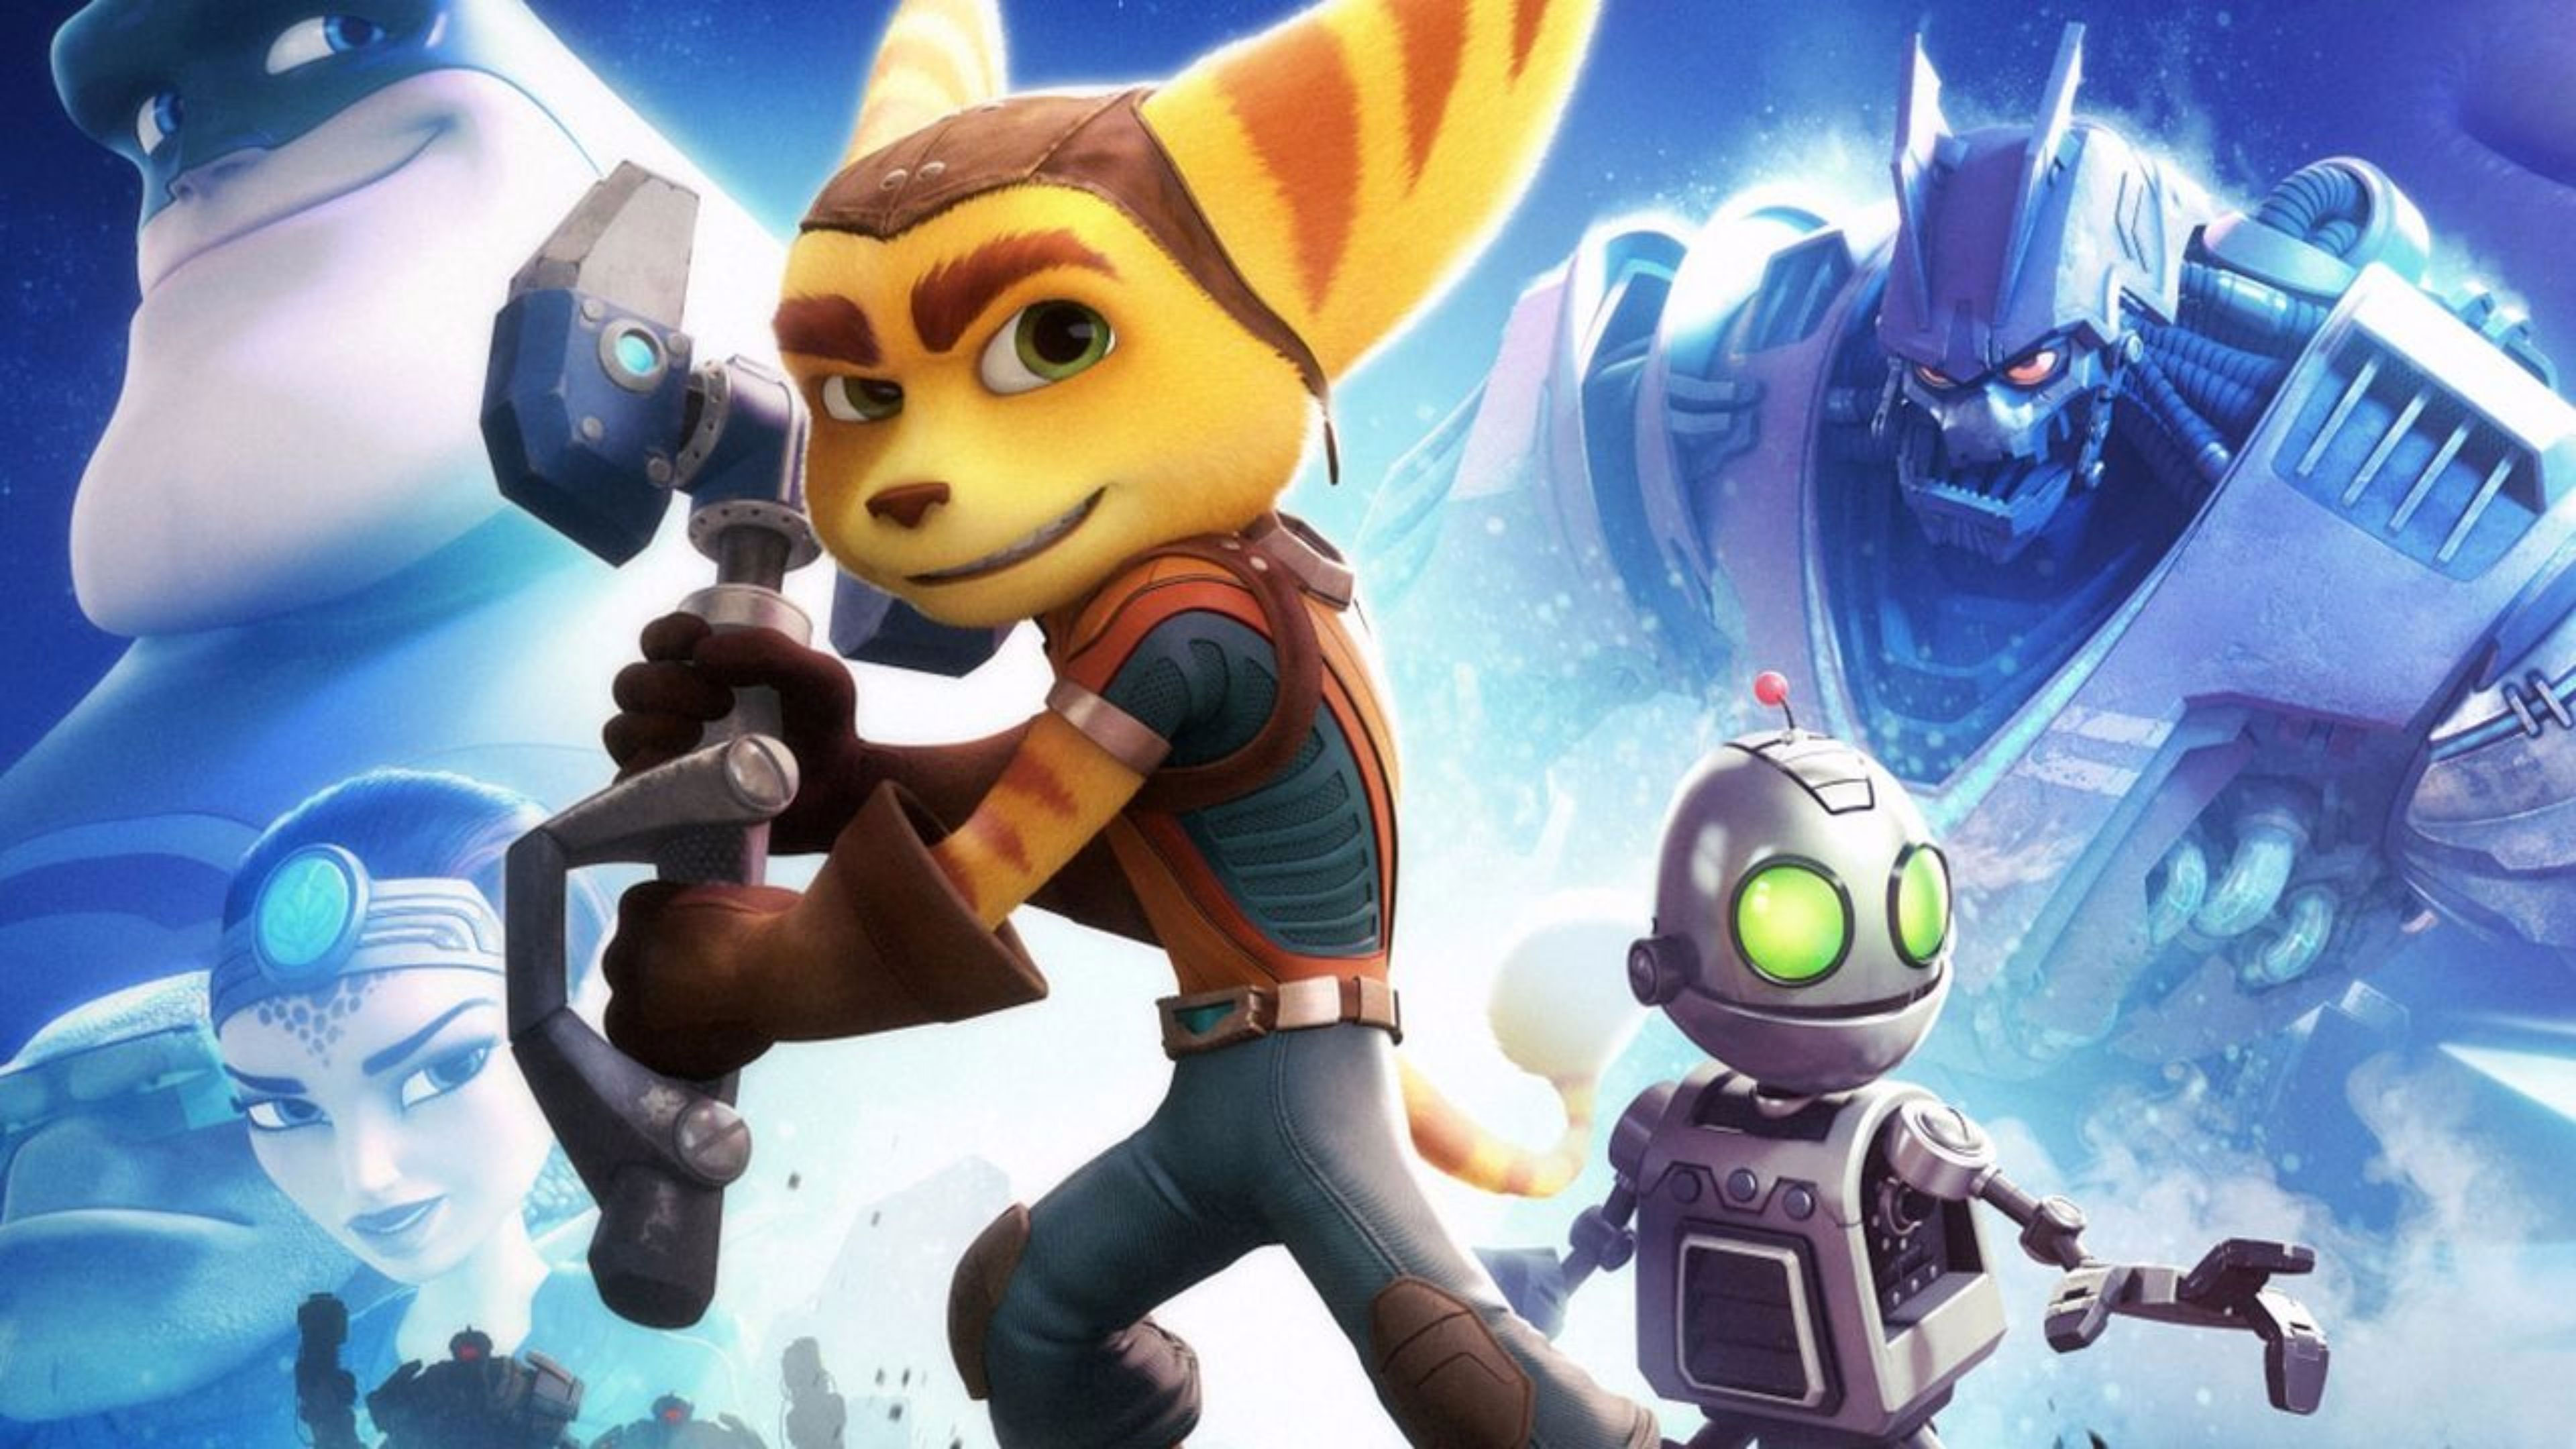 ratchet and clank play online